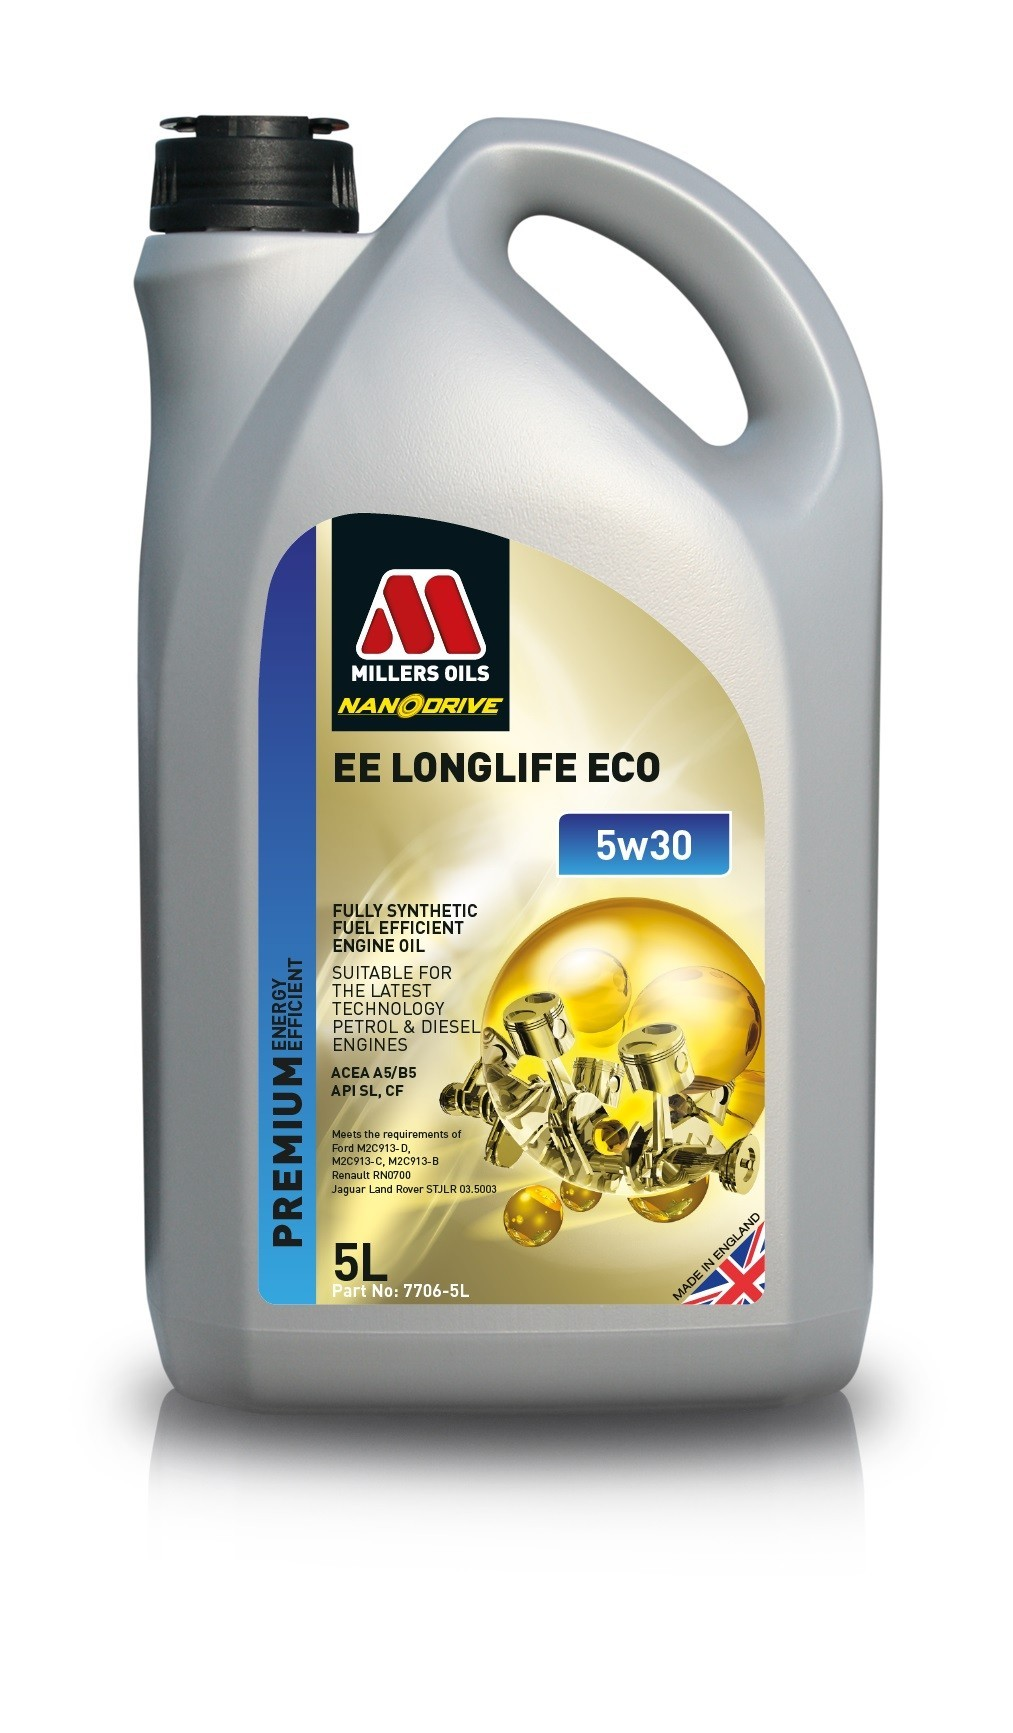 Millers Oils EE Longlife ECO 5w30 5l